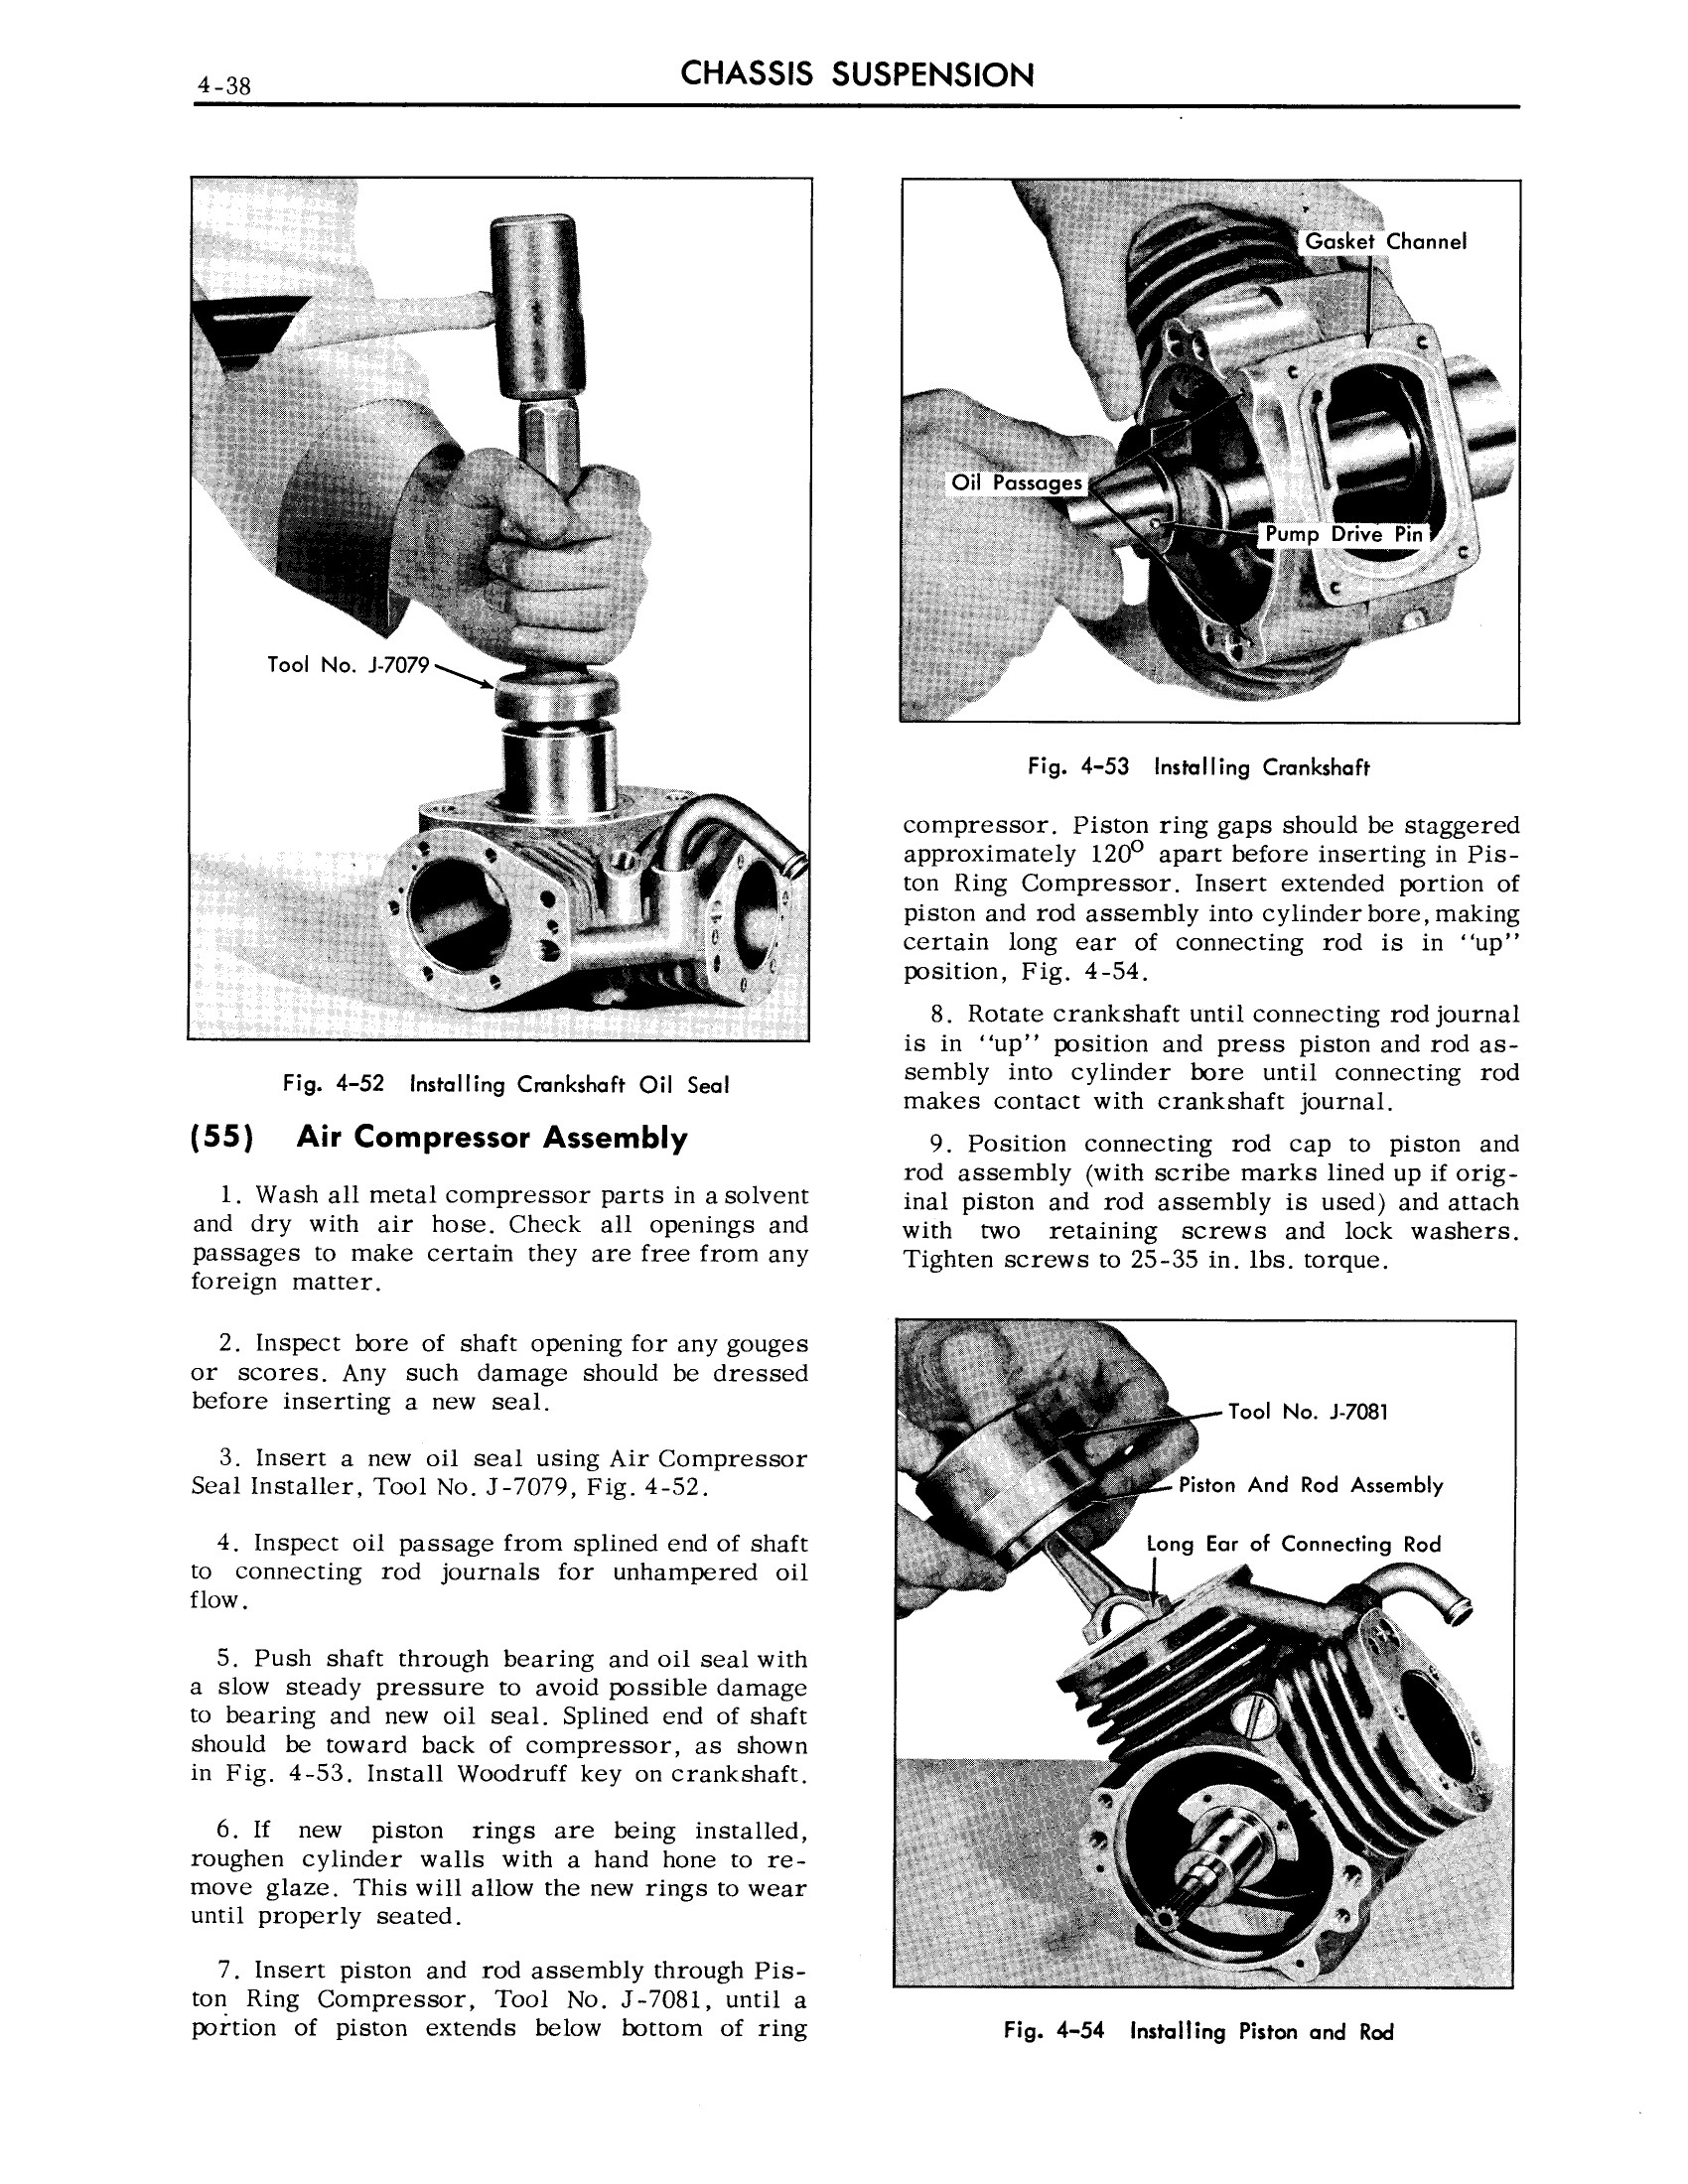 1959 Cadillac Shop Manual- Chassis Suspension Page 38 of 57